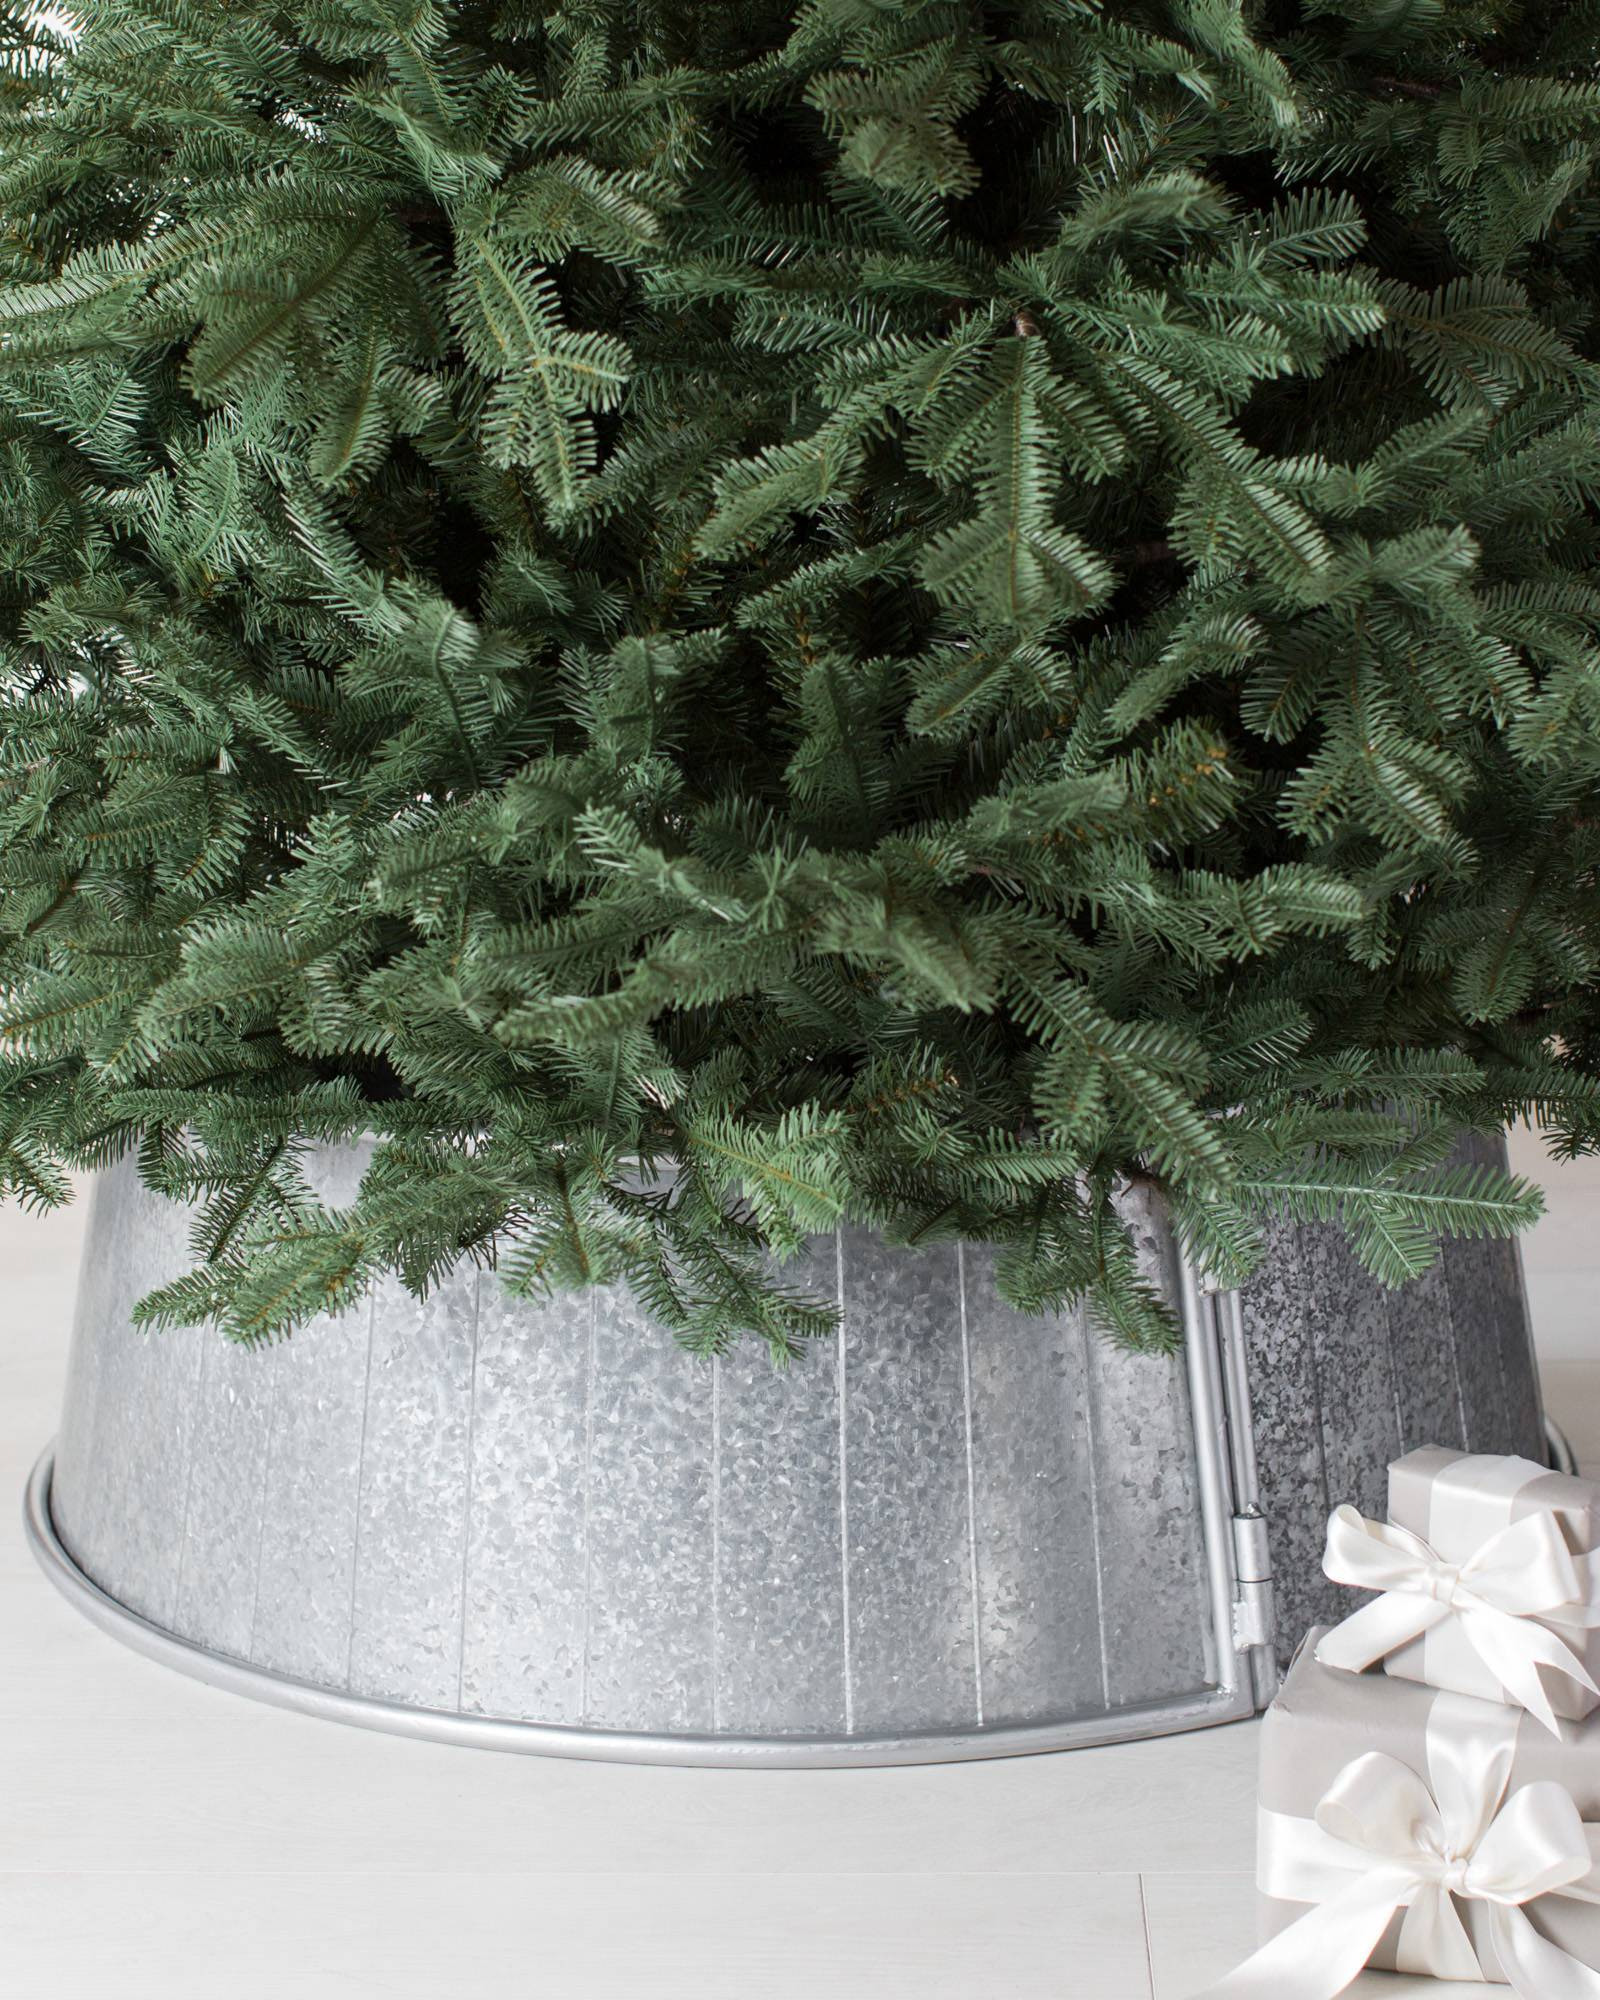 denali white artificial christmas tree balsam hill galvanized tree collar main